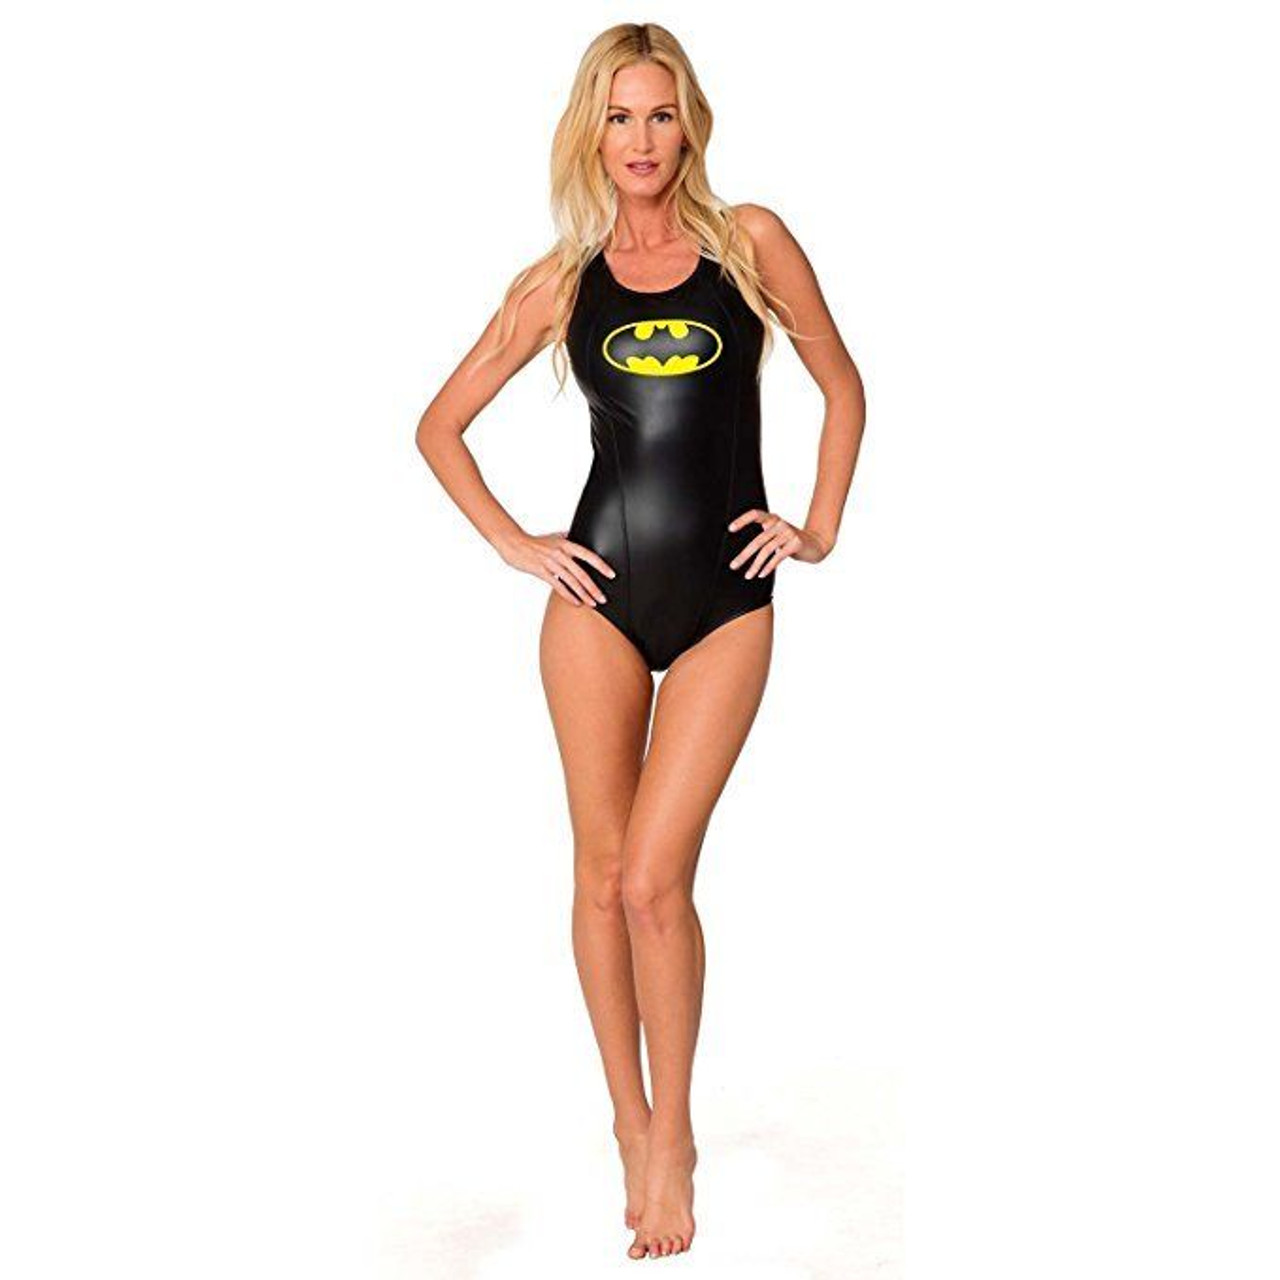 65bb960286335 Batman Logo DC Comics Swimwear Womens Bathing Suit Keyhole One Piece  Racerback - Fearless Apparel